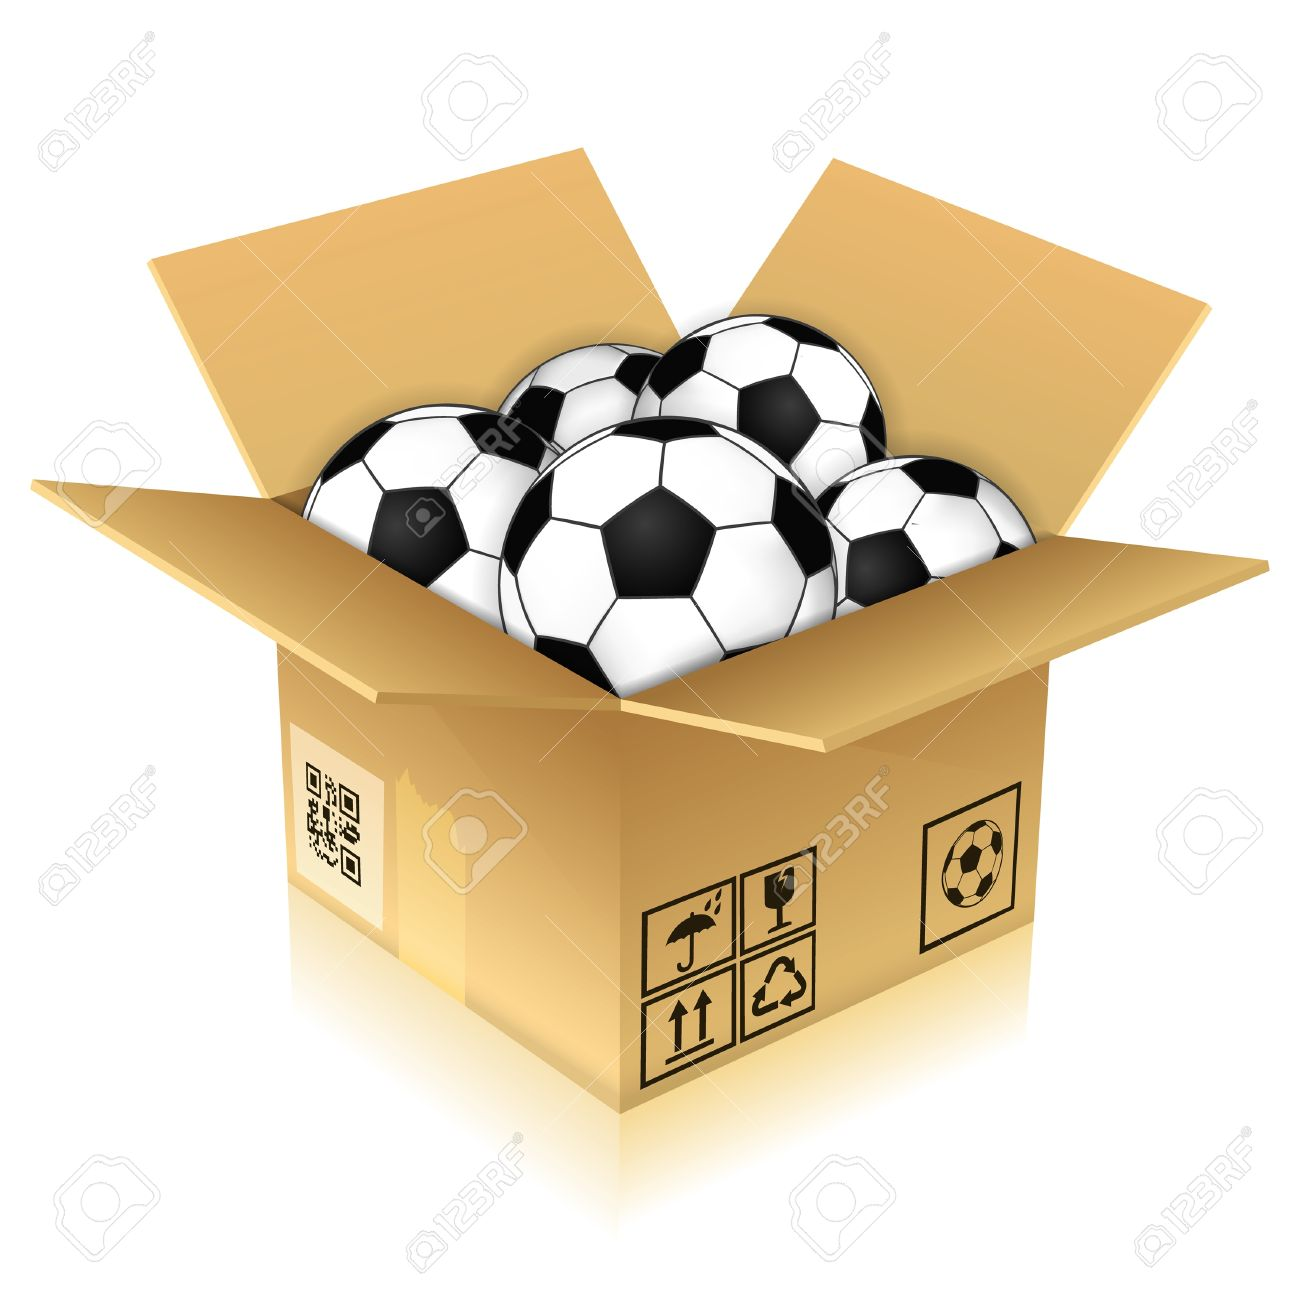 Ball in the box clipart 3 » Clipart Station clipart free download